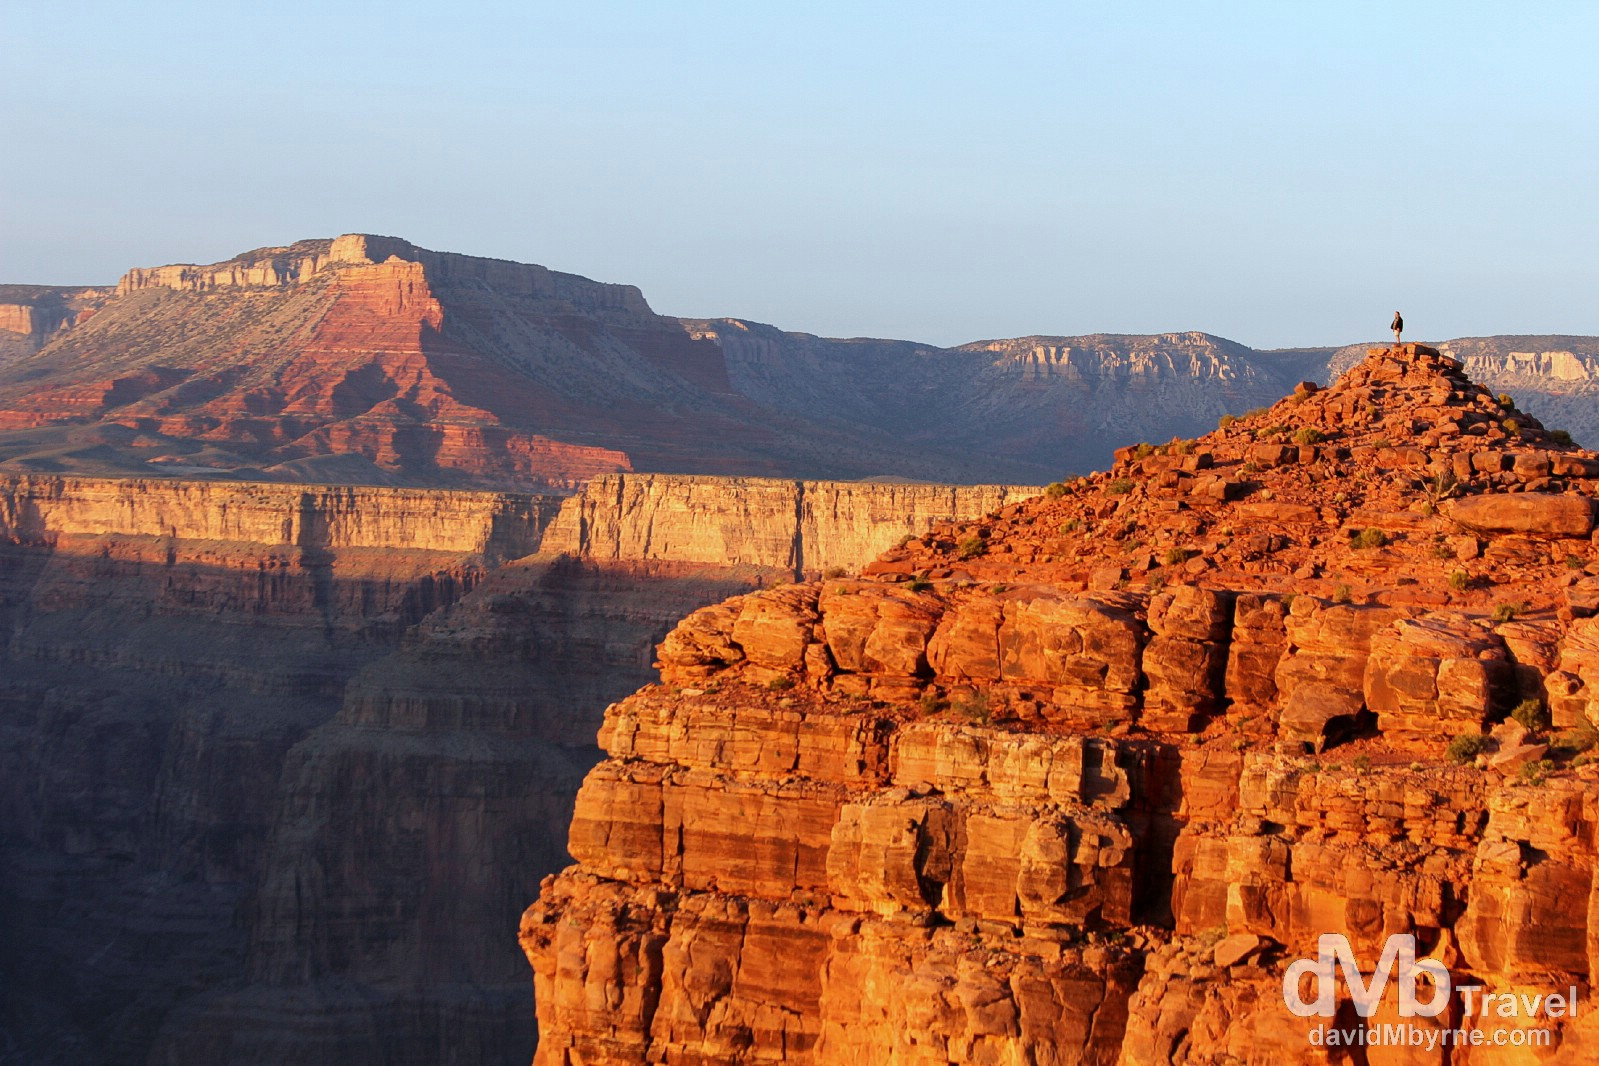 Sunset from a perilous position at Eagle Point, The Grand Canyon West, Arizona, USA. April 6th 2013.